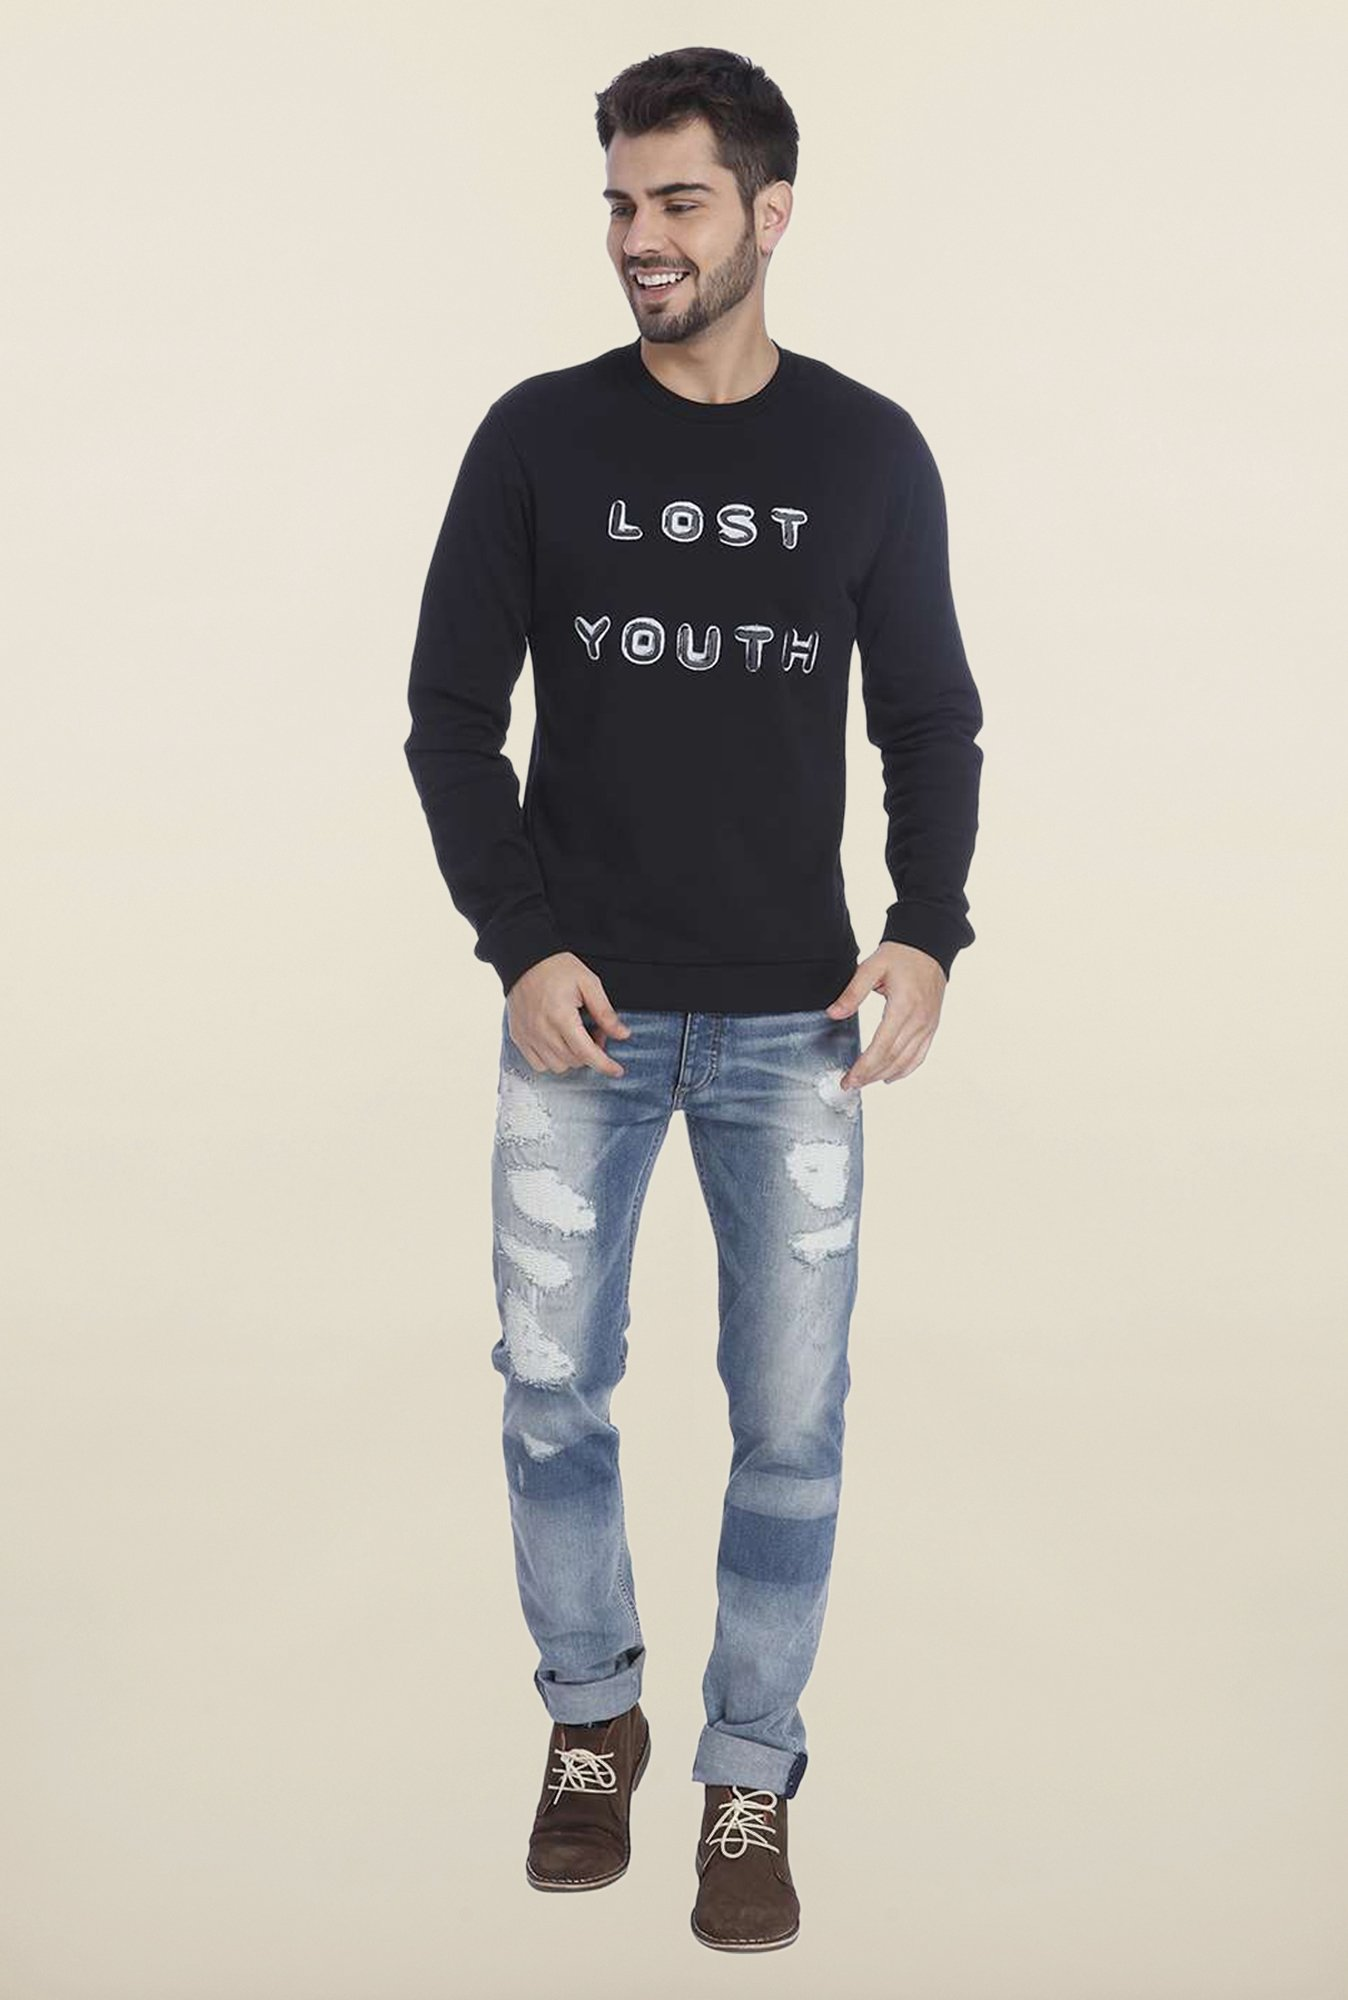 Jack & Jones Black Crew Neck Sweatshirt